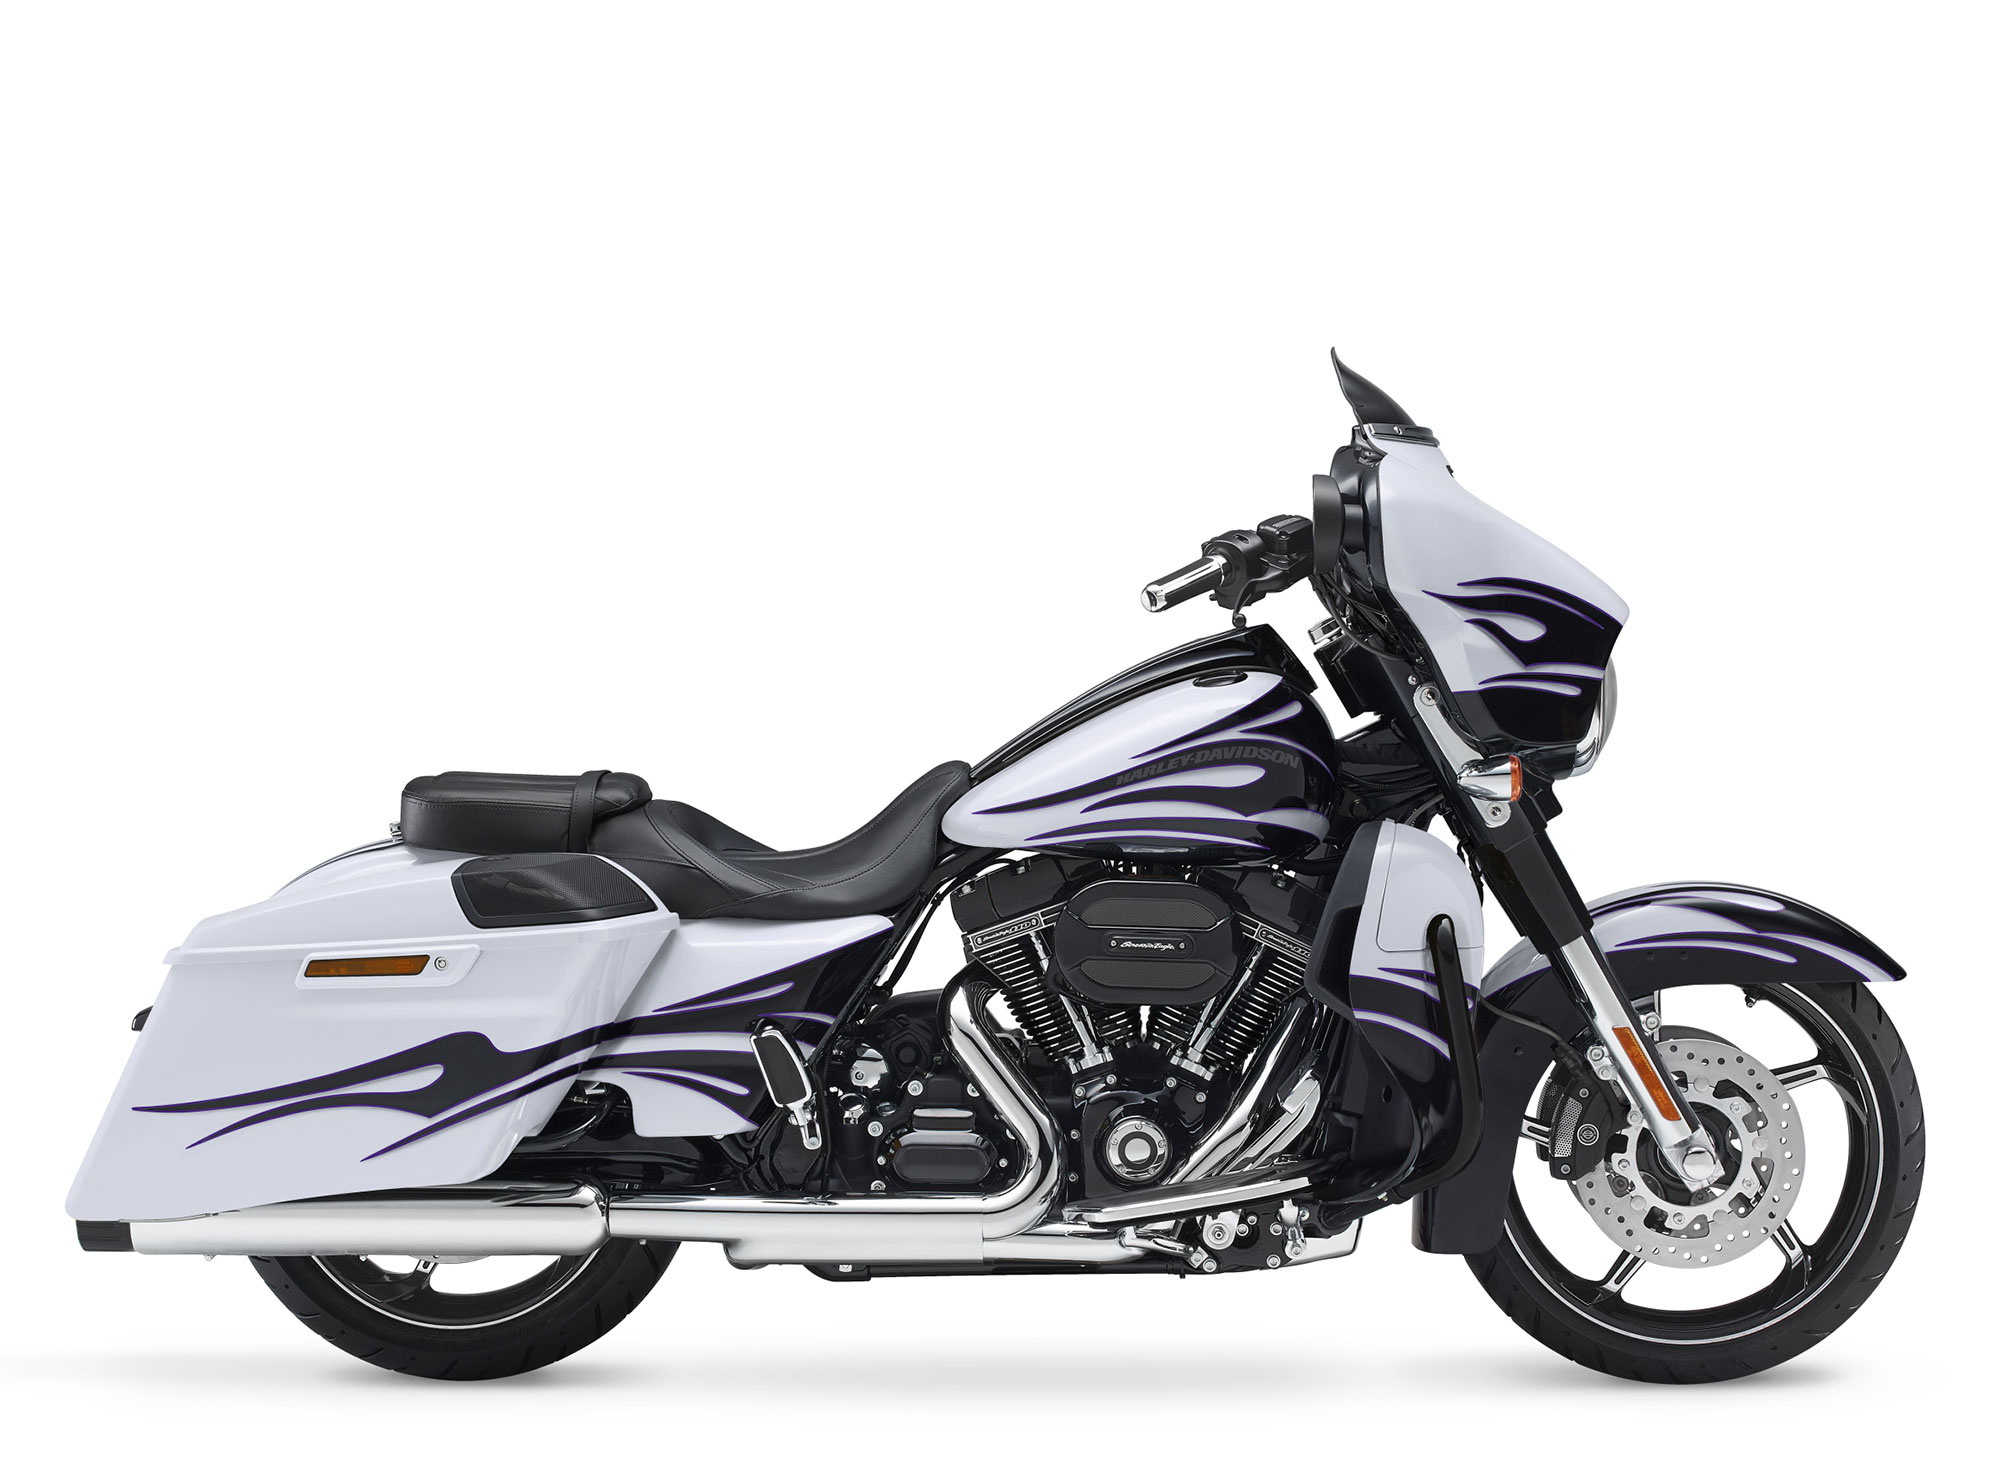 2016 harley davidson cvo street glide review. Black Bedroom Furniture Sets. Home Design Ideas